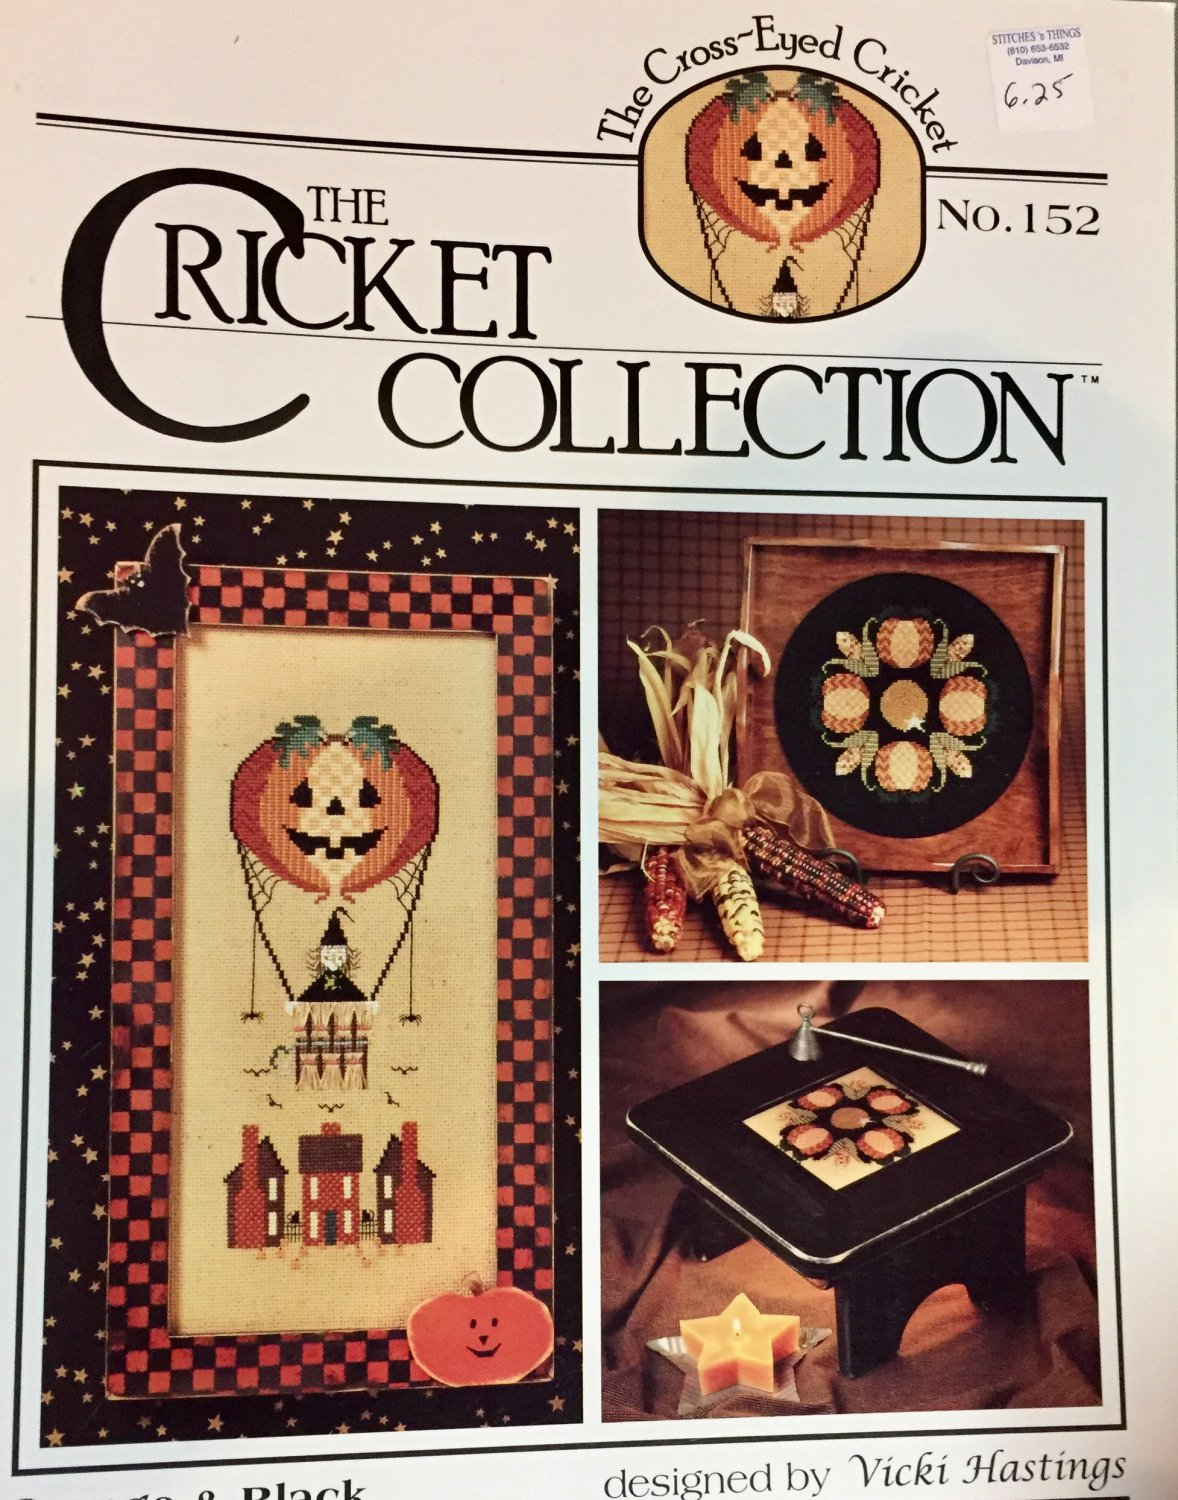 The Cricket Collection 152 Orange & Black Fall Halloween theme cross stitch pattern